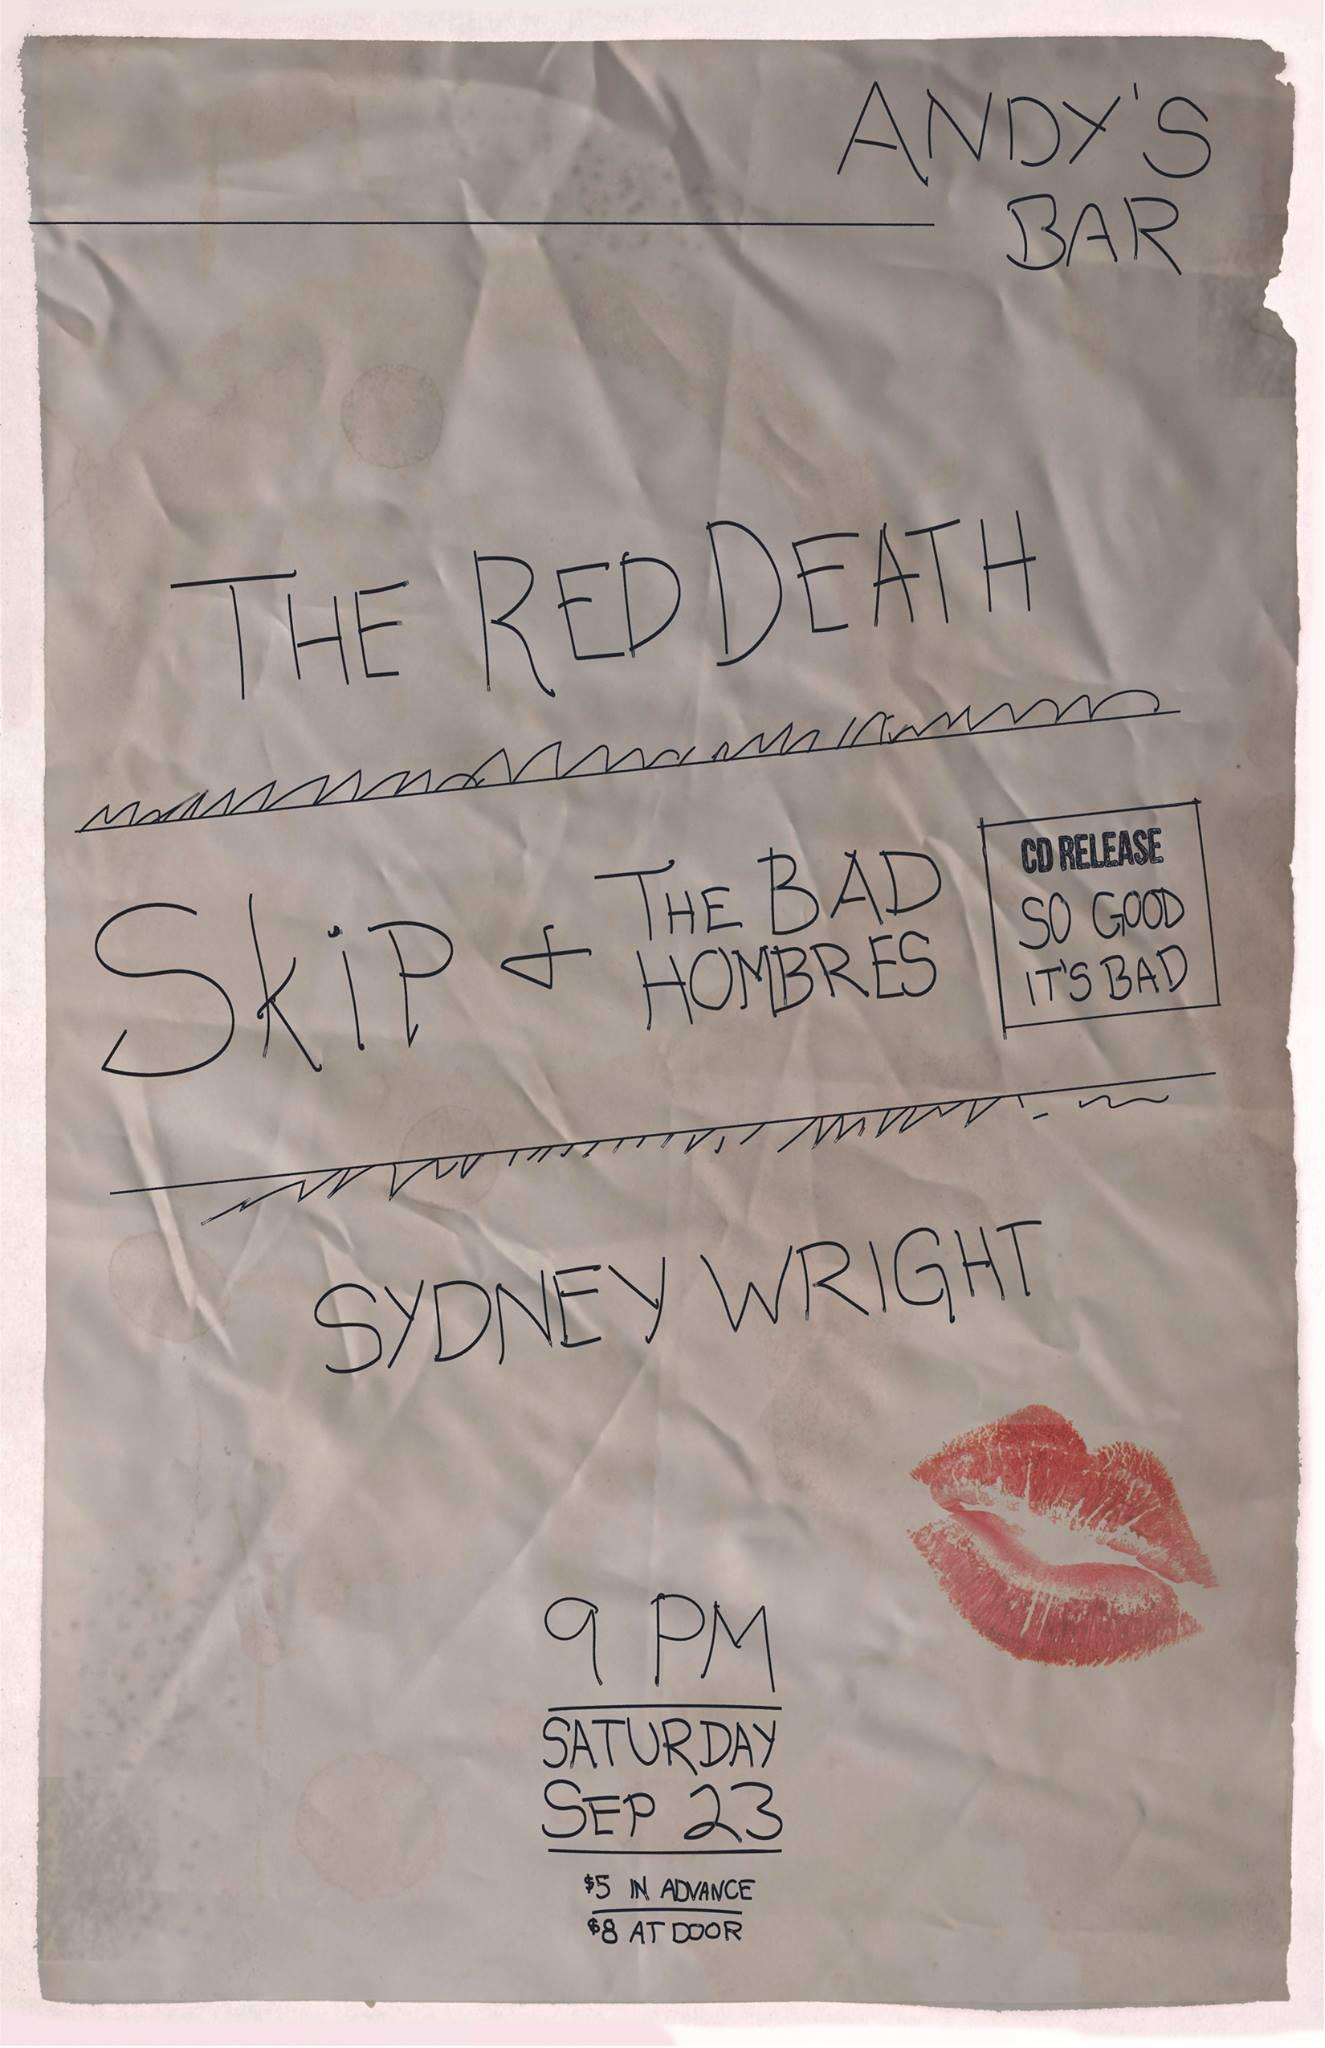 Skip and the Bad Hombres ALBUM RELEASE SHOW w/ Red Death, Sydney Wright